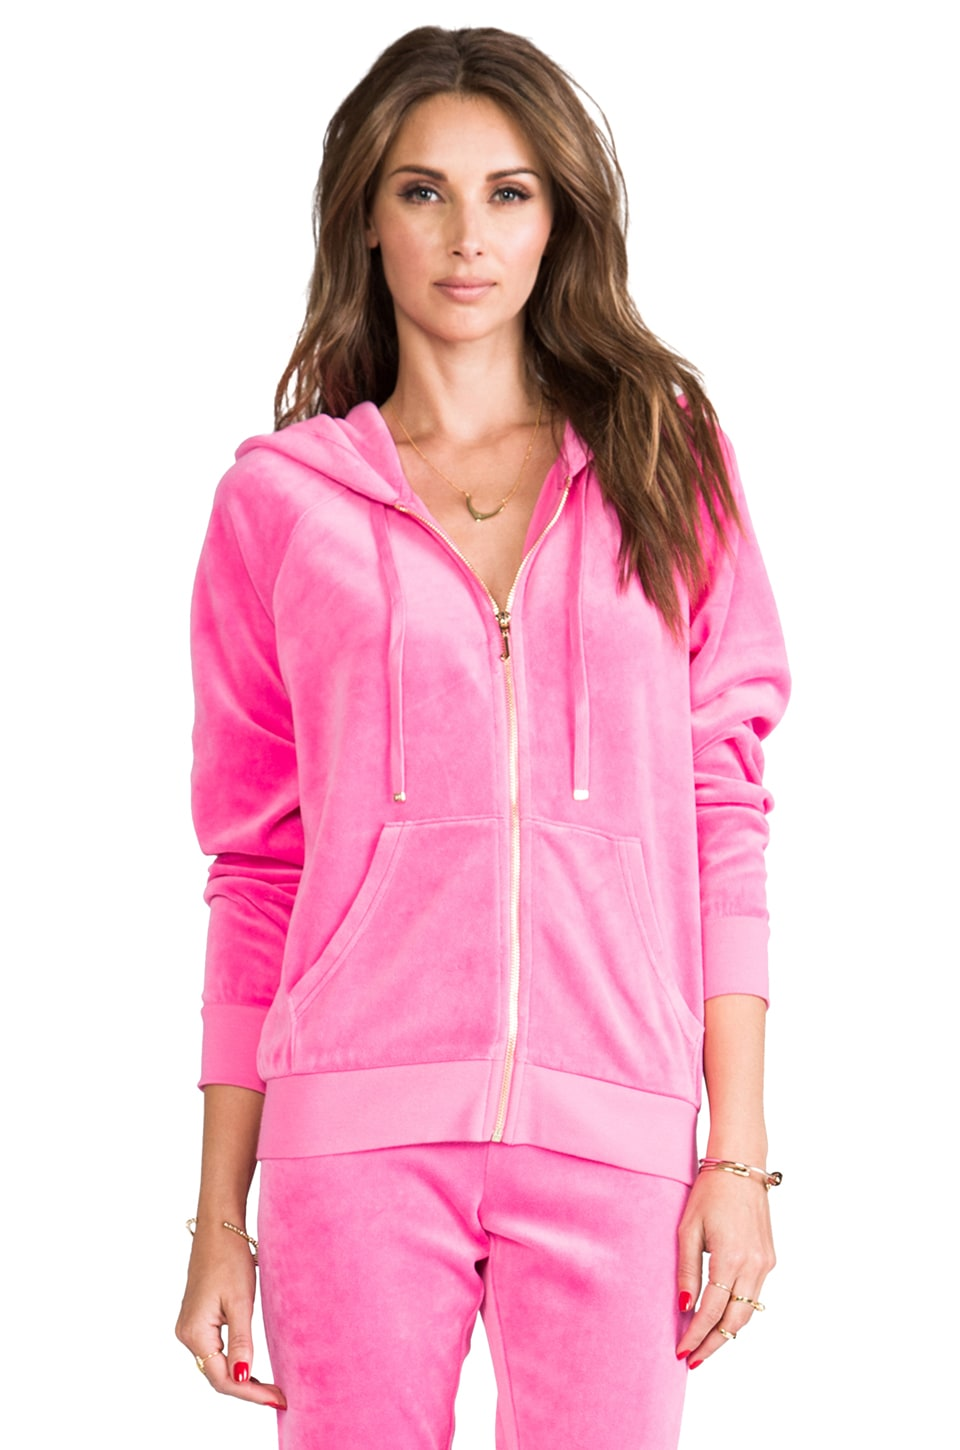 Juicy Couture J Bling Relaxed Hoodie in Fragrant Rose